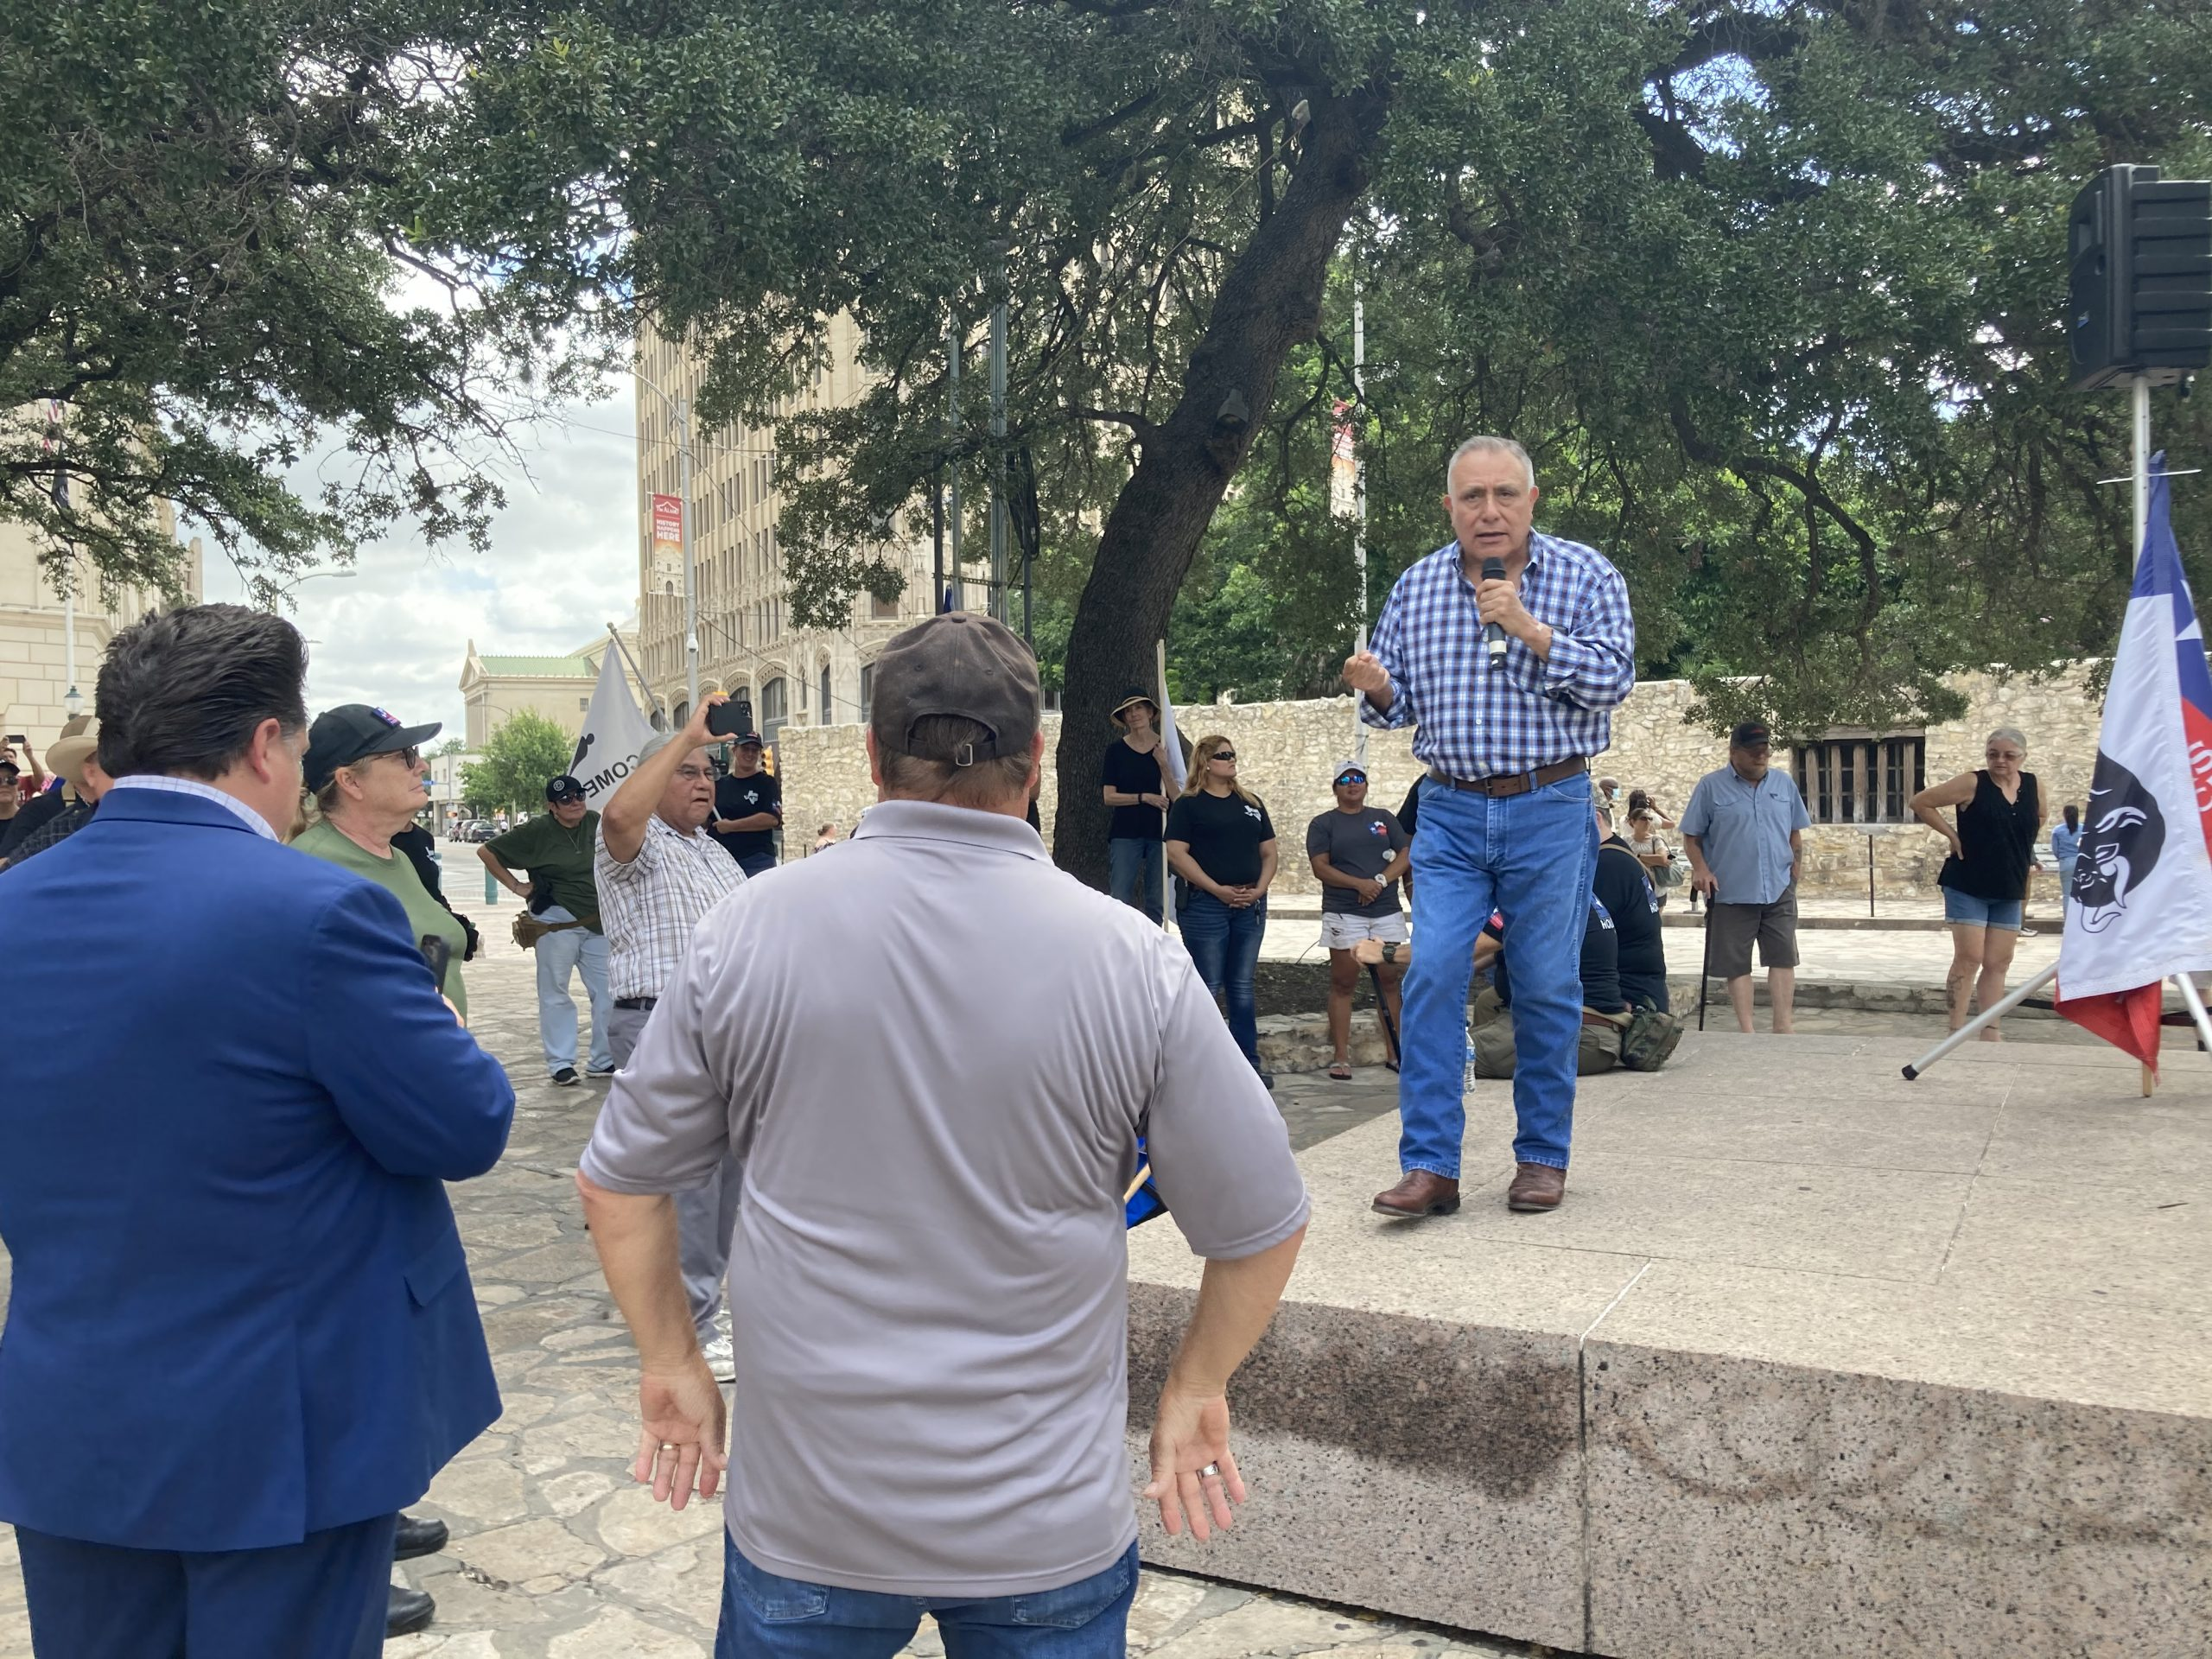 'All sides of the story': Dueling but peaceful protests capture the battle over the Alamo narrative